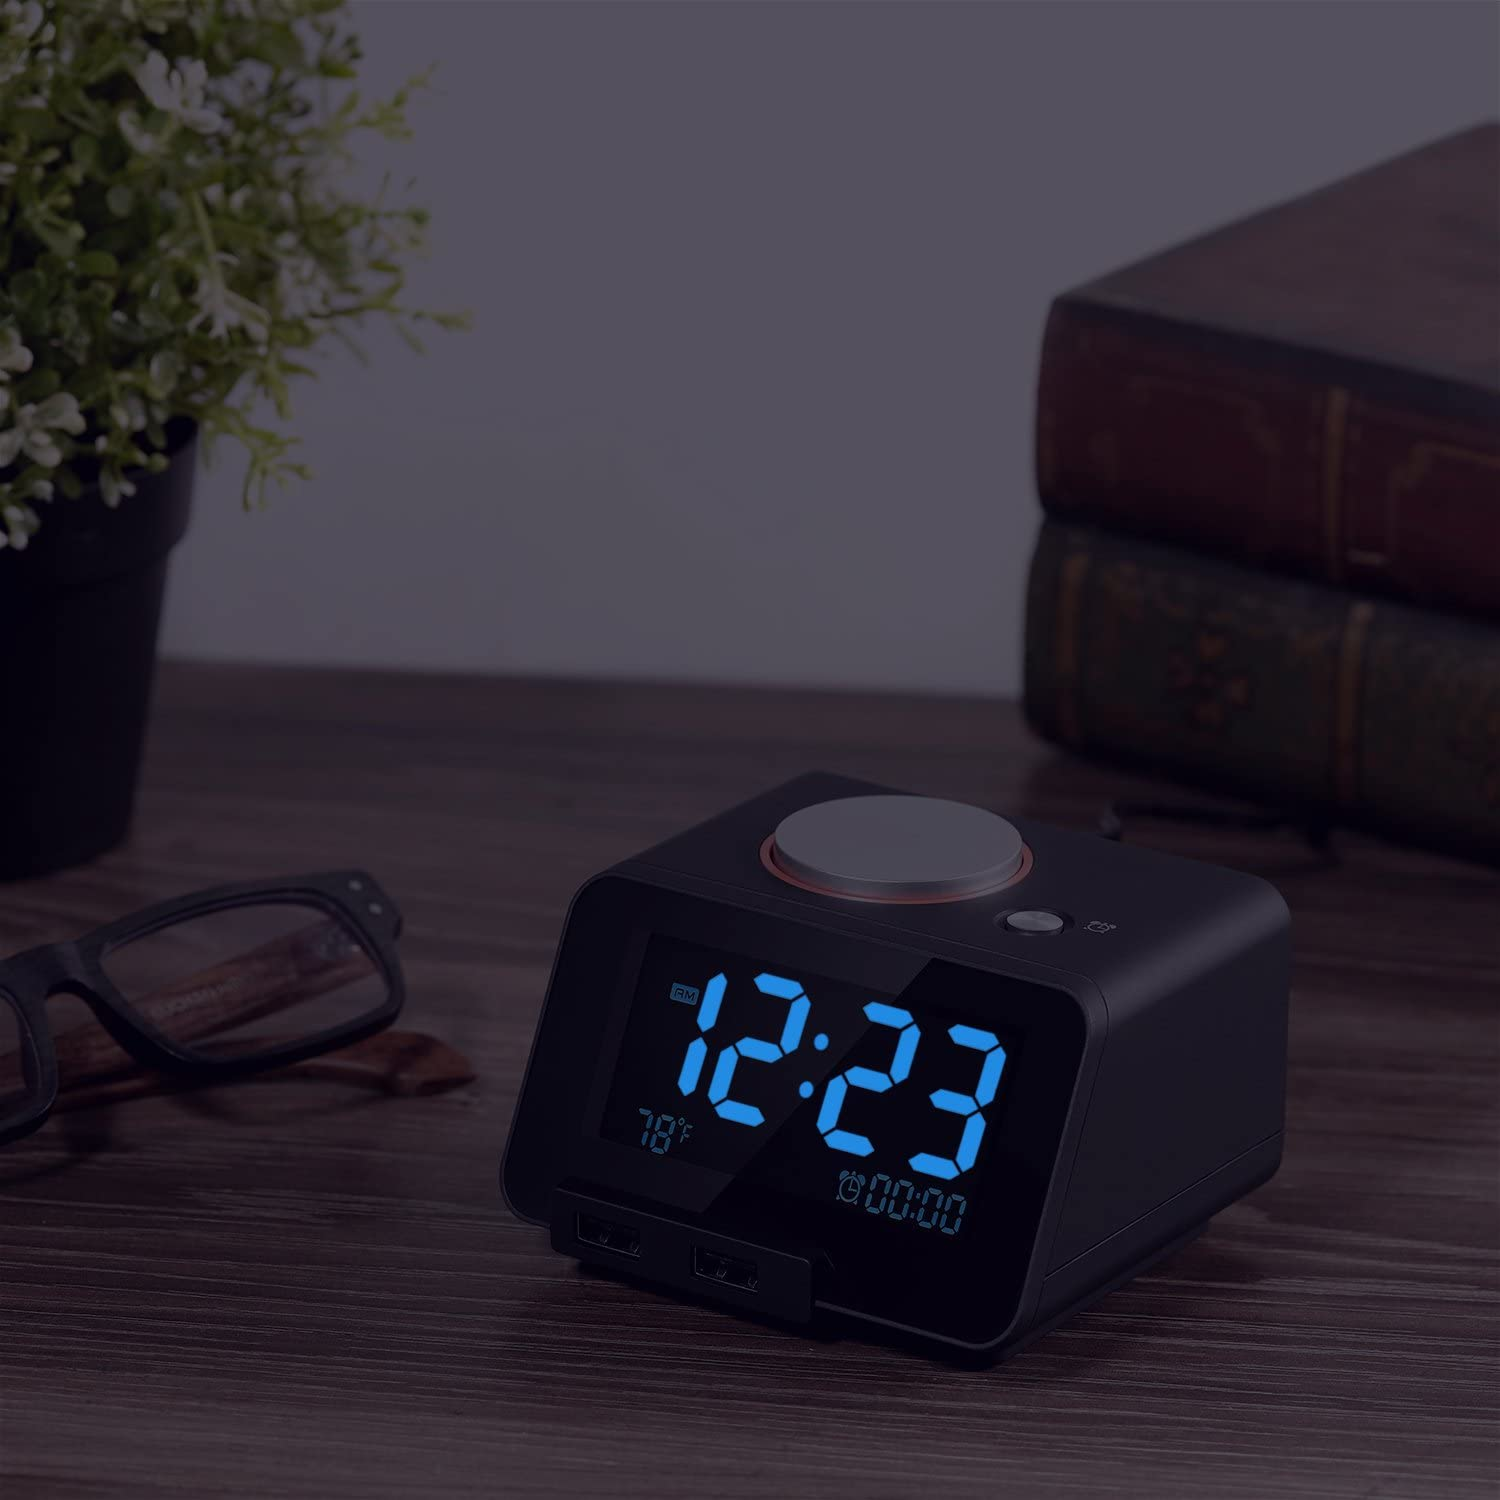 Upgraded Version Homtime ChargarAlarm-B Alarm Clock USB Charger for Bedroom,2 USB Charging Ports Phone Charger Compatible with iPhone and Android,Snooze Fuction Upgraded Version 4 Dimmer Larger Font Display and Temperrature Black